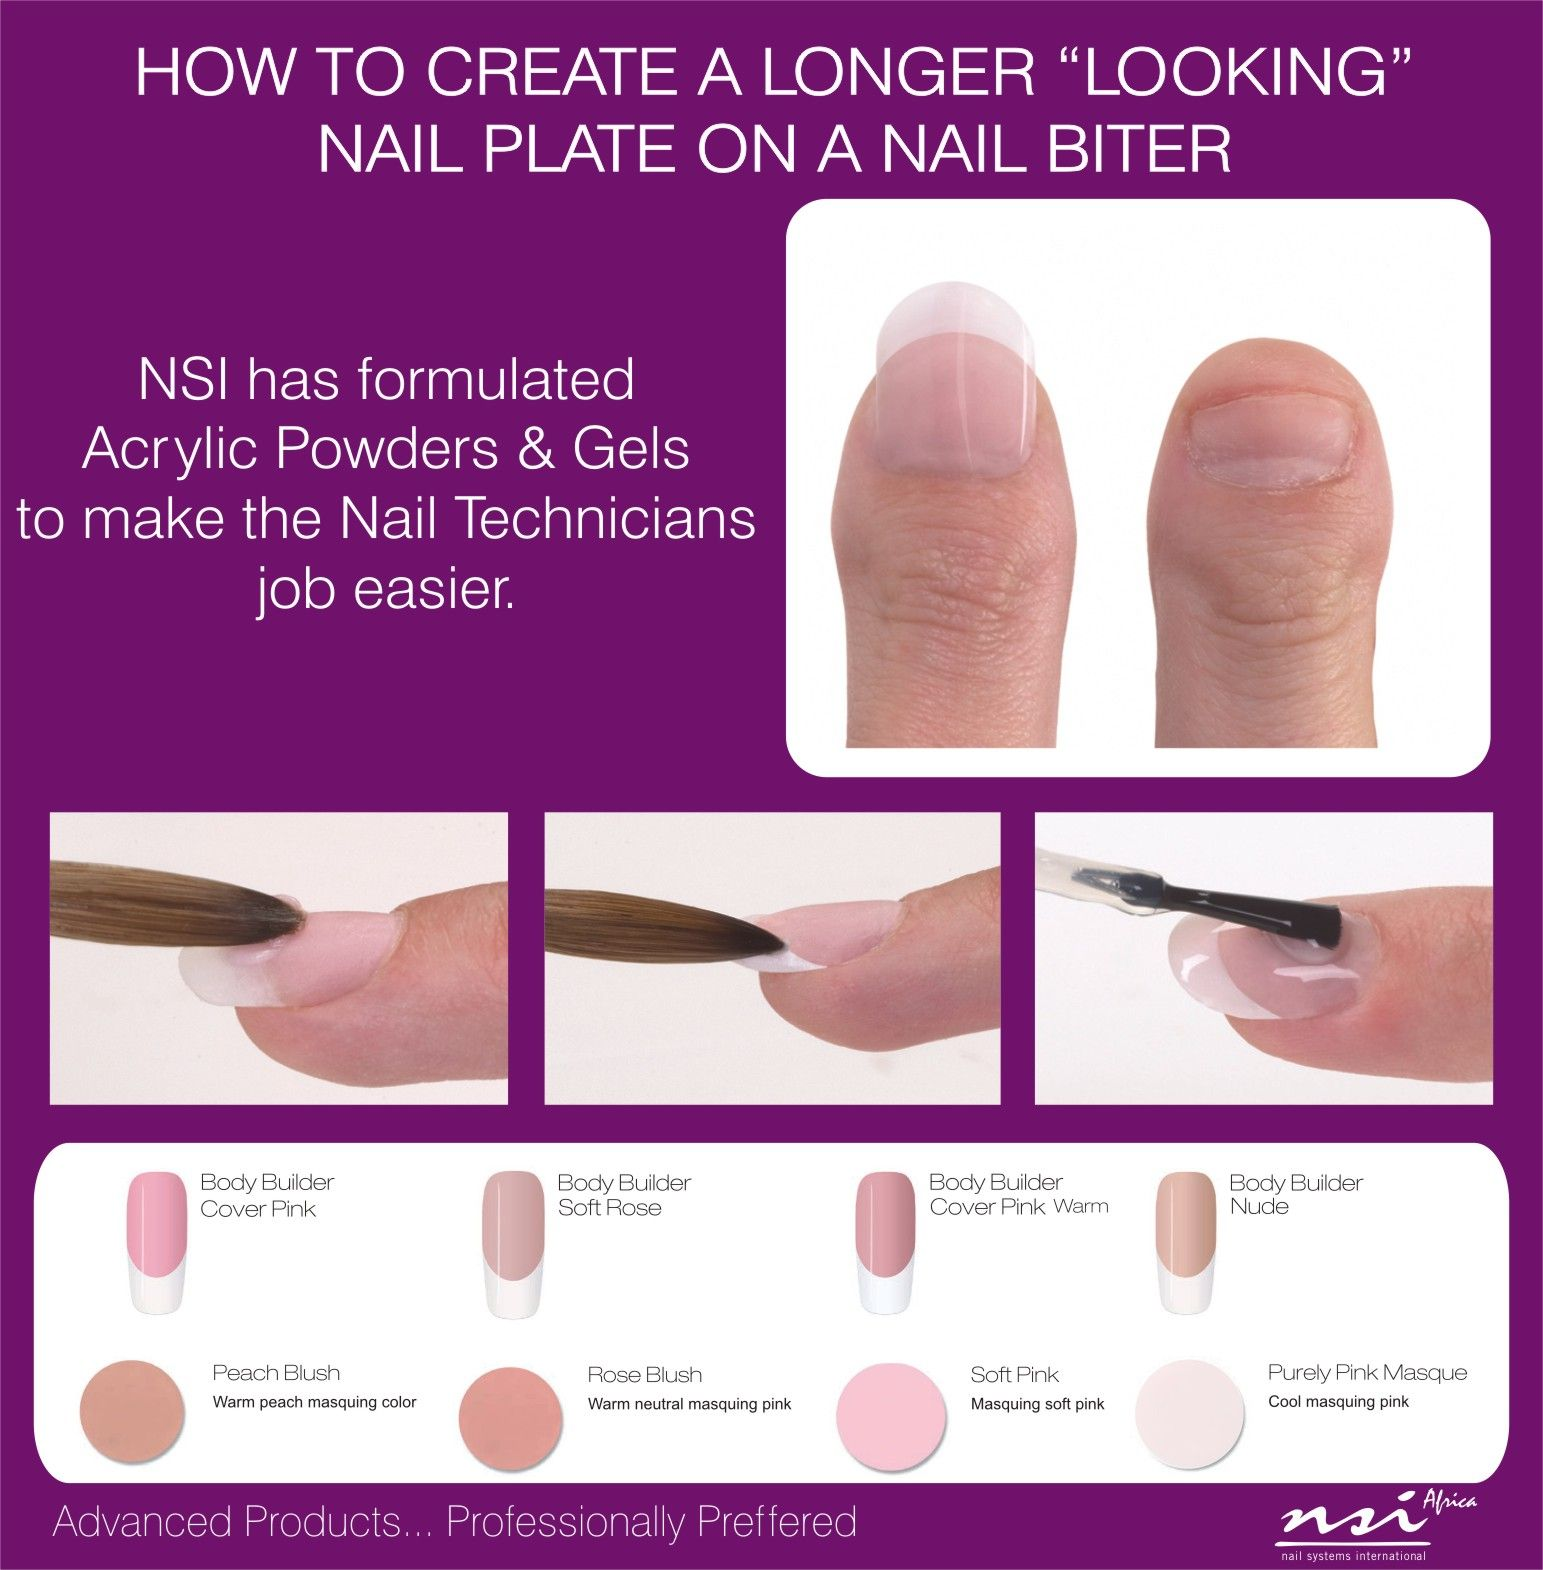 How to create a longer looking nail plate on a Nail biter